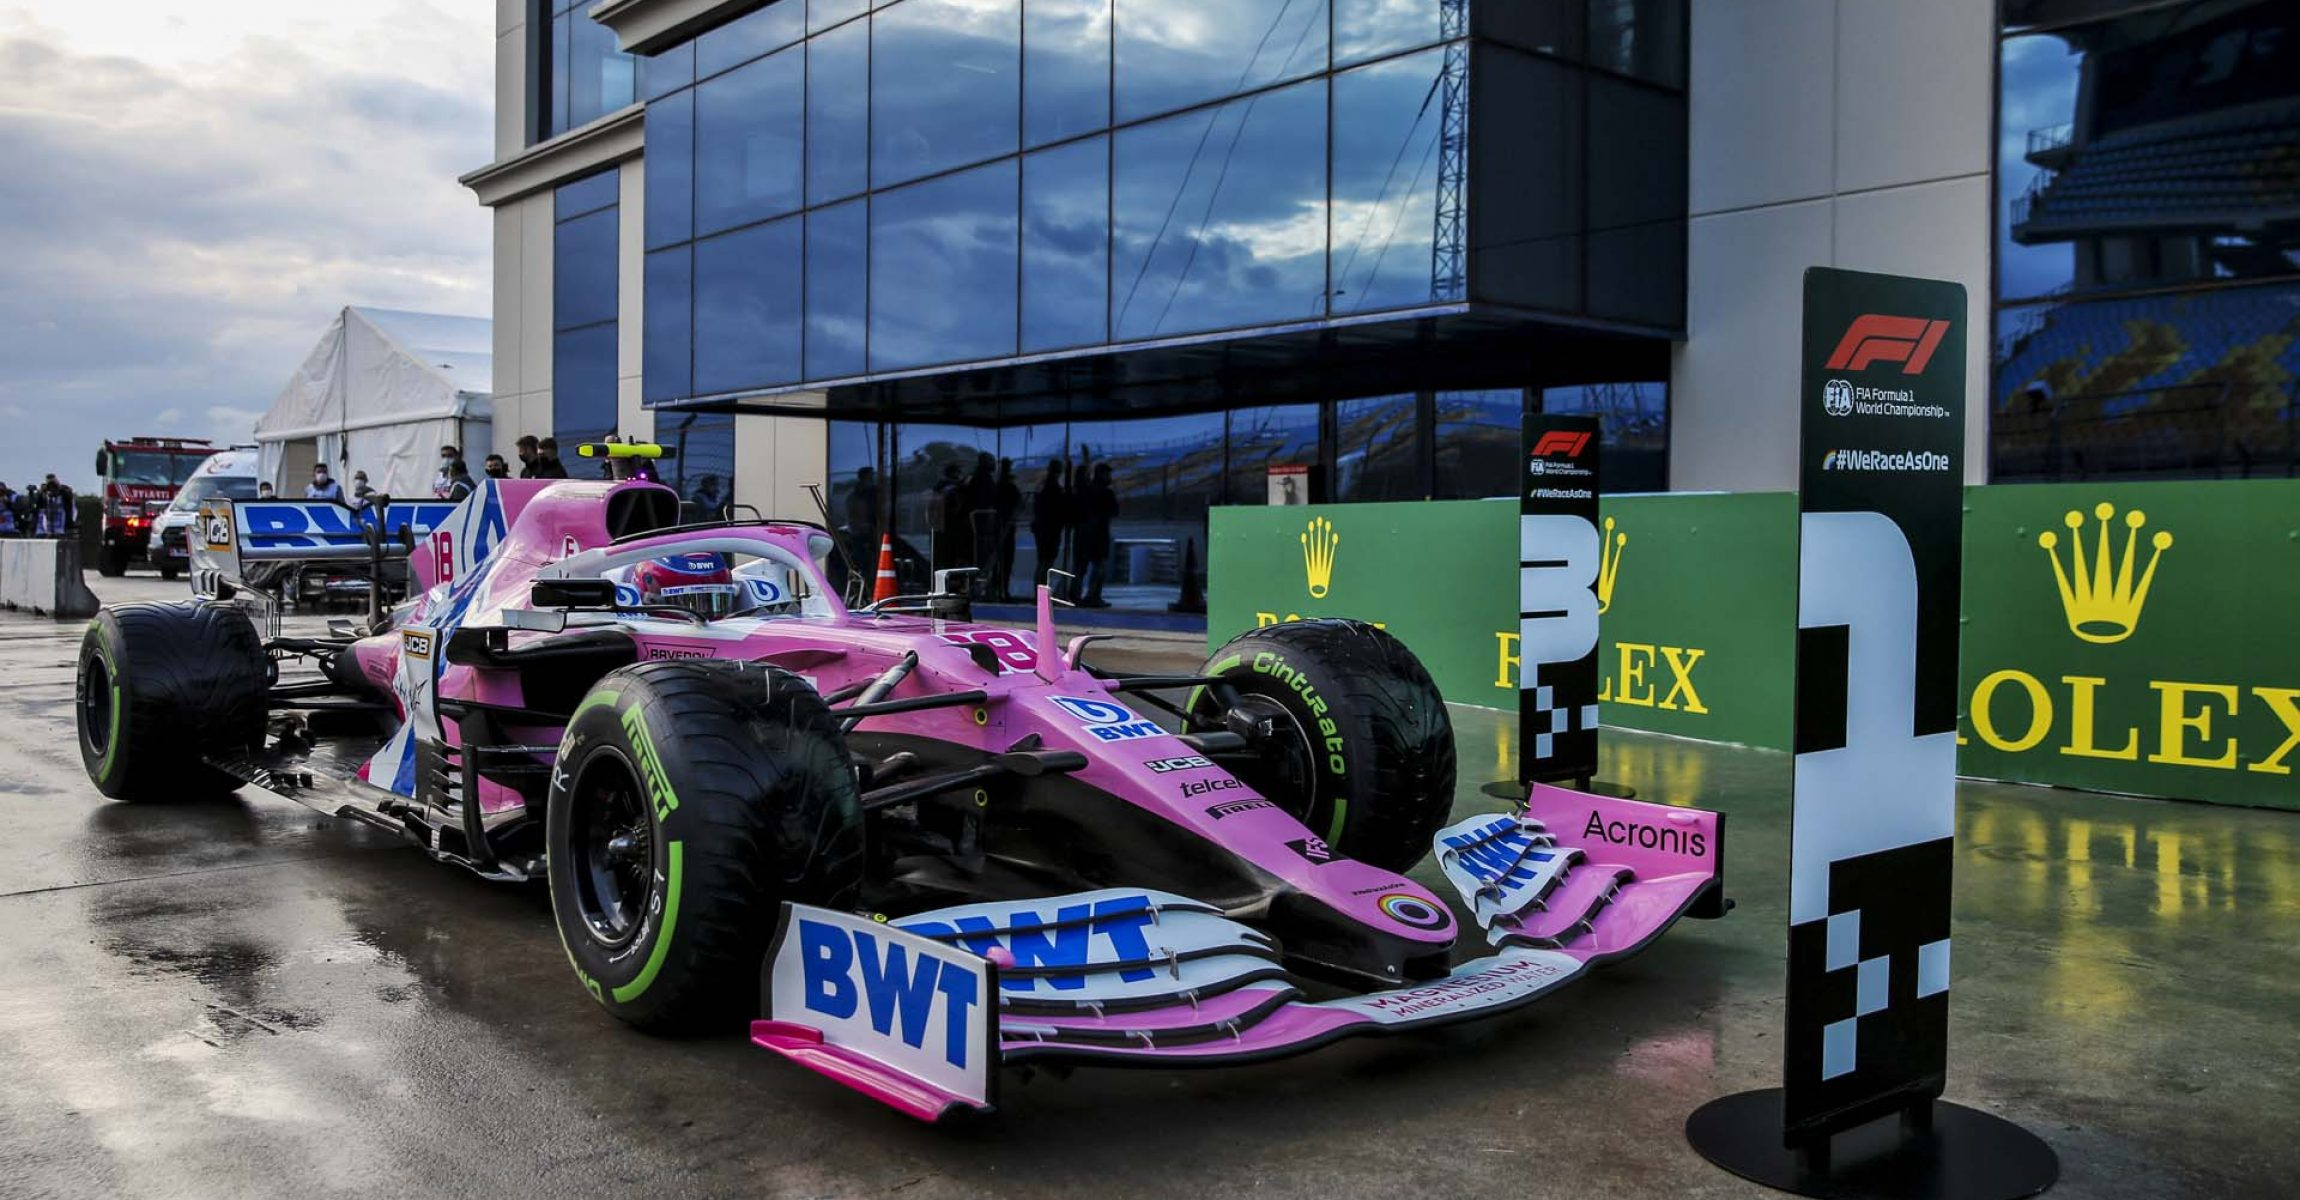 Car of Pole Sitter Lance Stroll, Racing Point in Parc Ferme